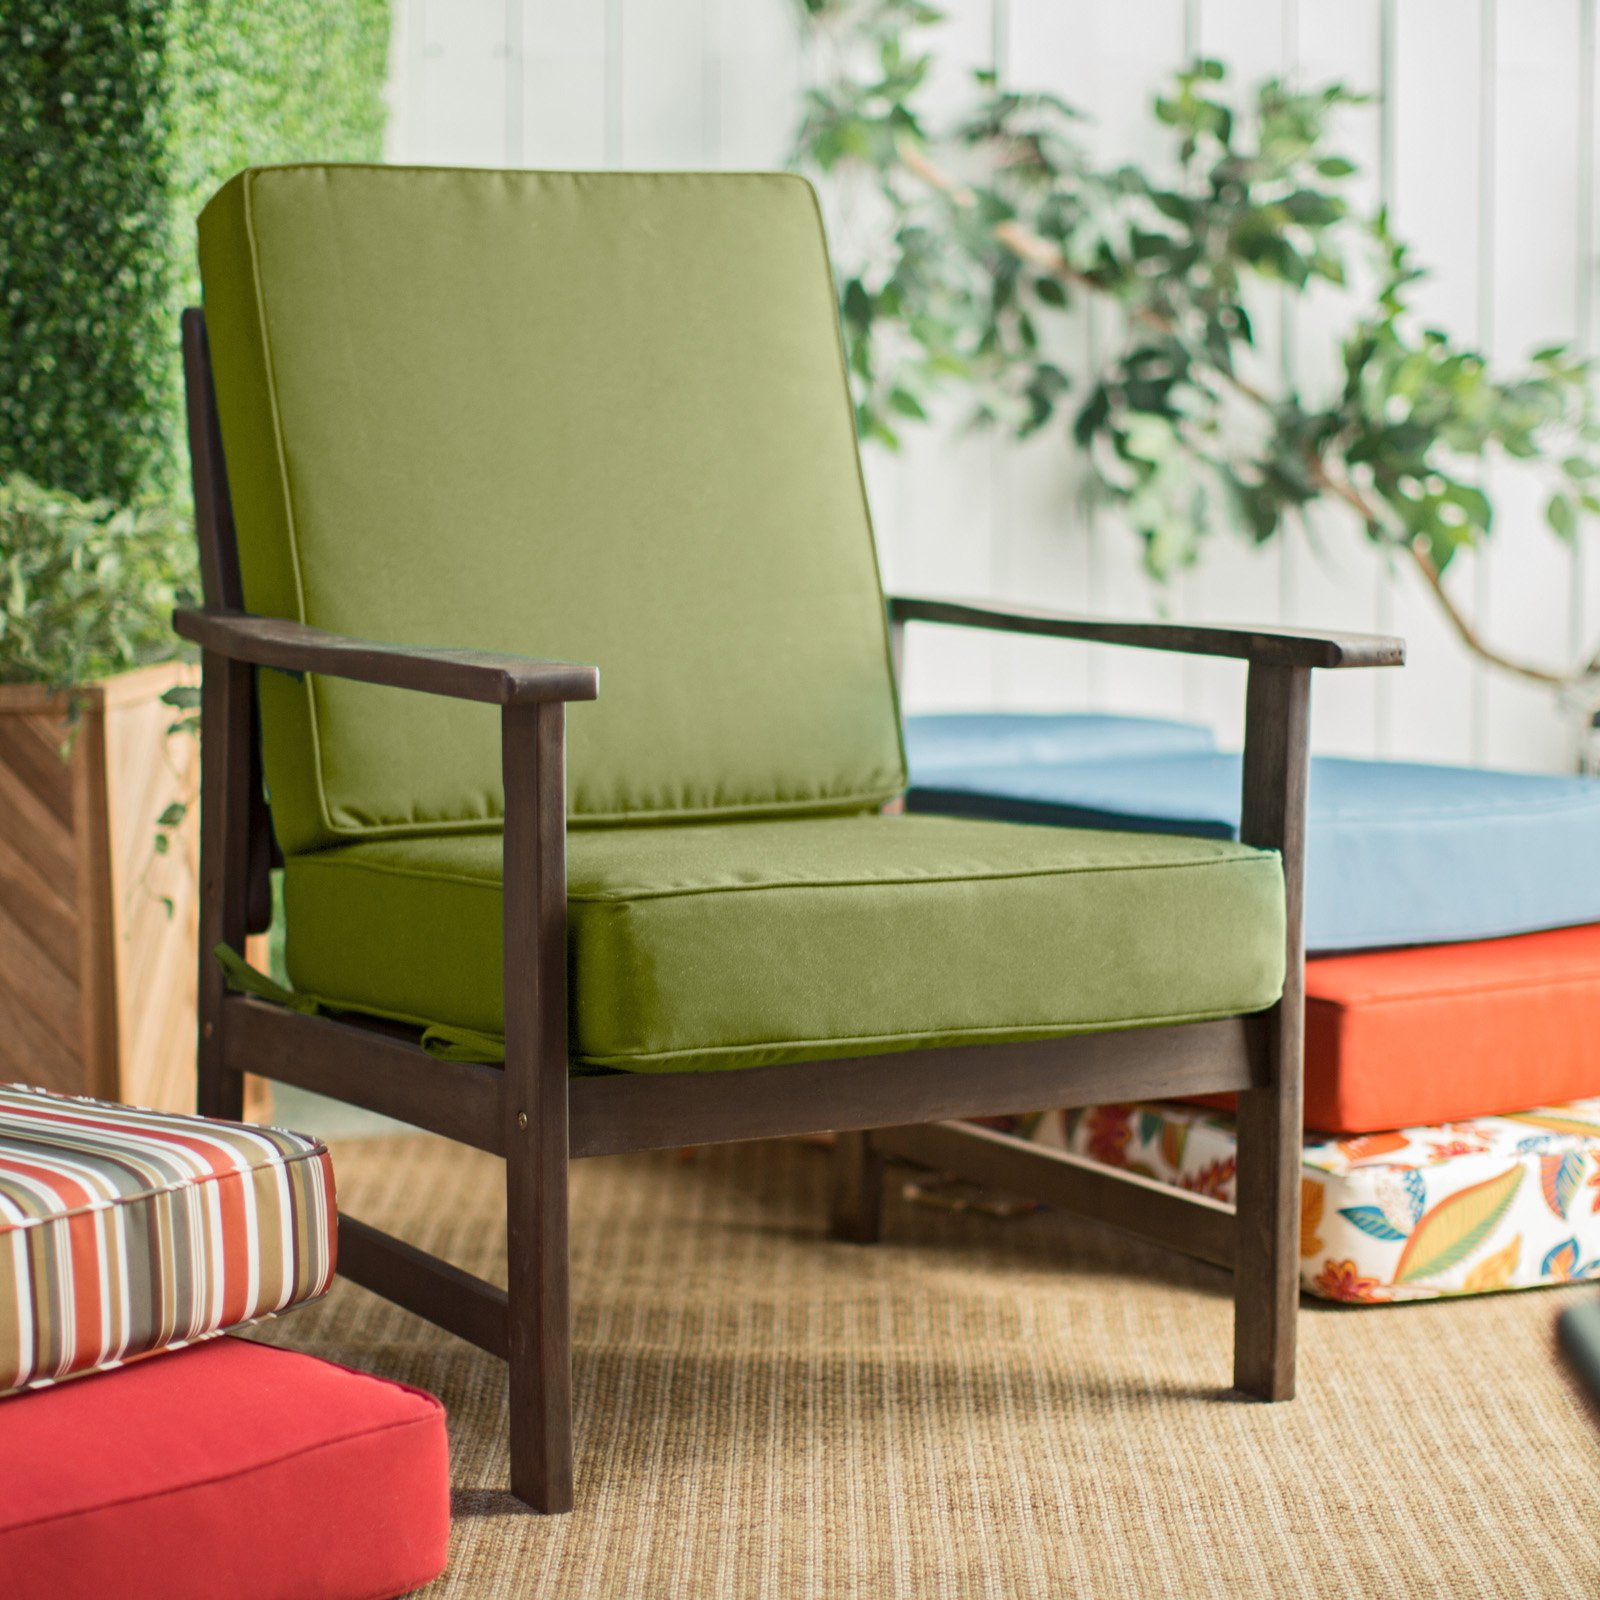 Outdoor Patio Chair Cushions Green